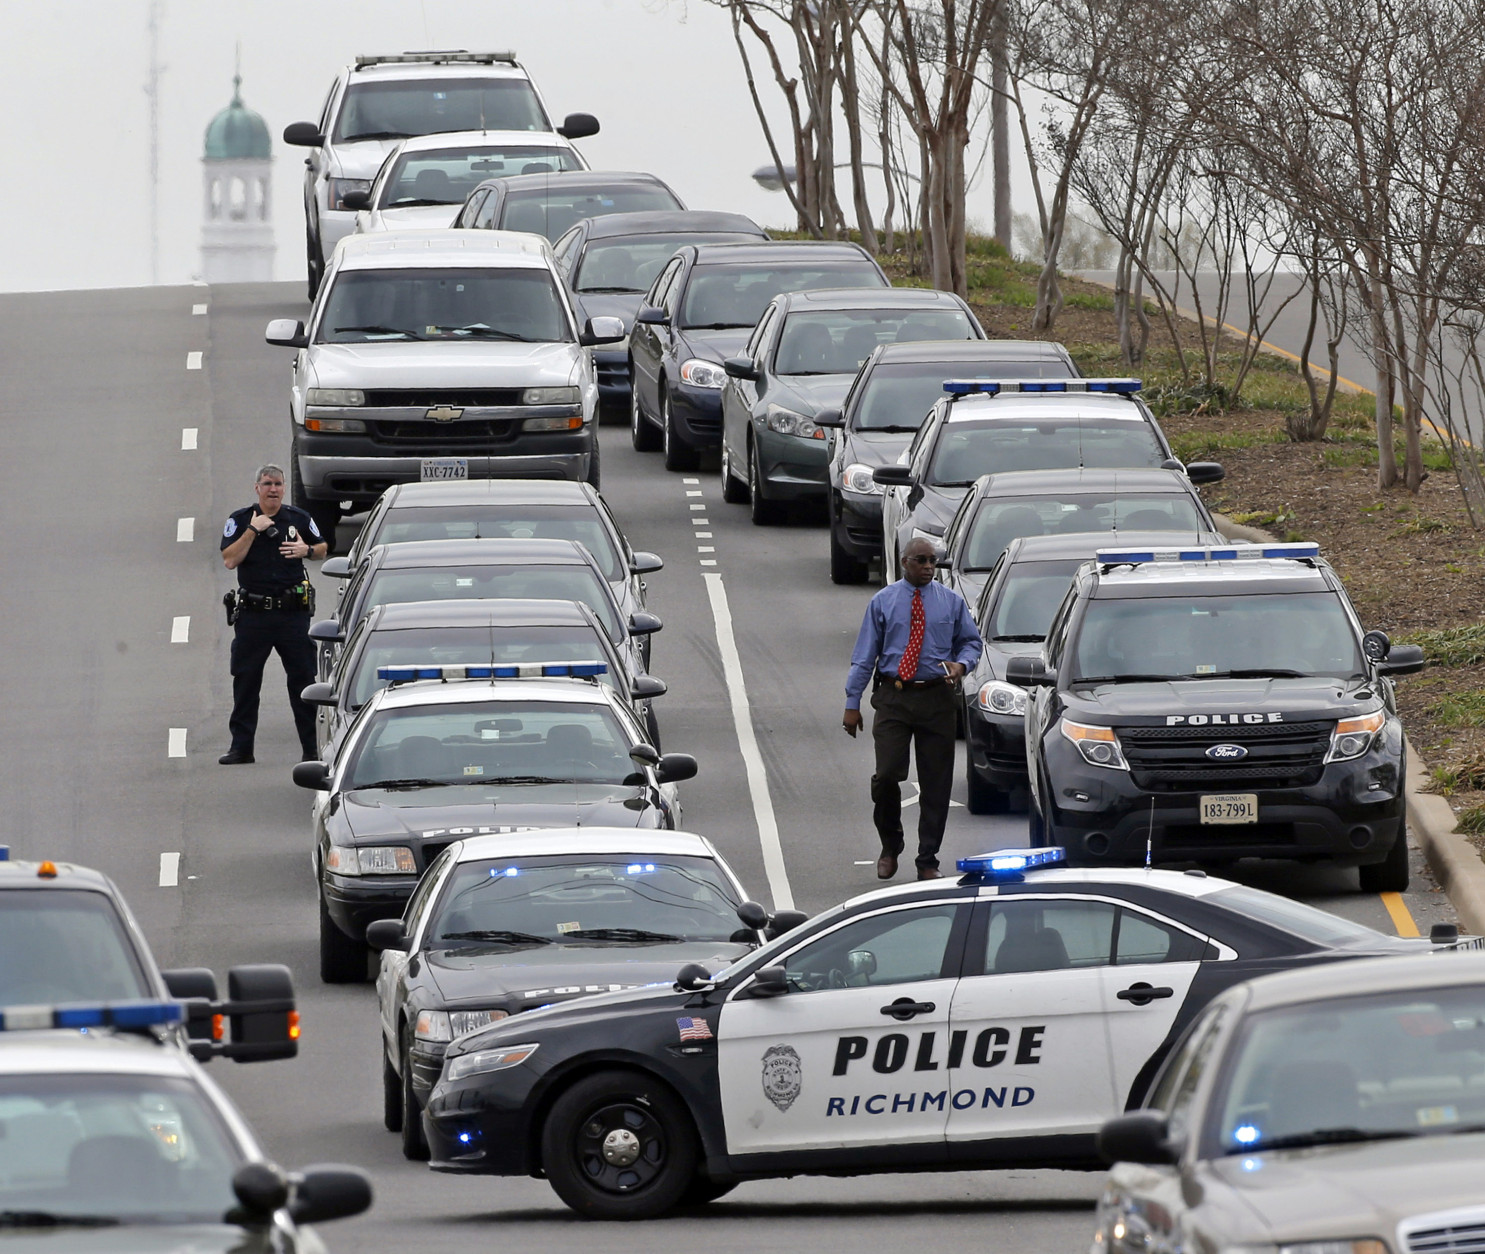 Police vehicles line the northbound lane of N. Boulevard, near the Greyhound bus terminal where a shooting occurred Thursday, March 31, 2016.  Virginia State Police say one trooper responding to a shooting at the Richmond bus station and two civilians have been taken to a hospital. Police say the suspect in a shooting at the bus station has died.  (P.Kevin Morley/Richmond Times-Dispatch via AP)